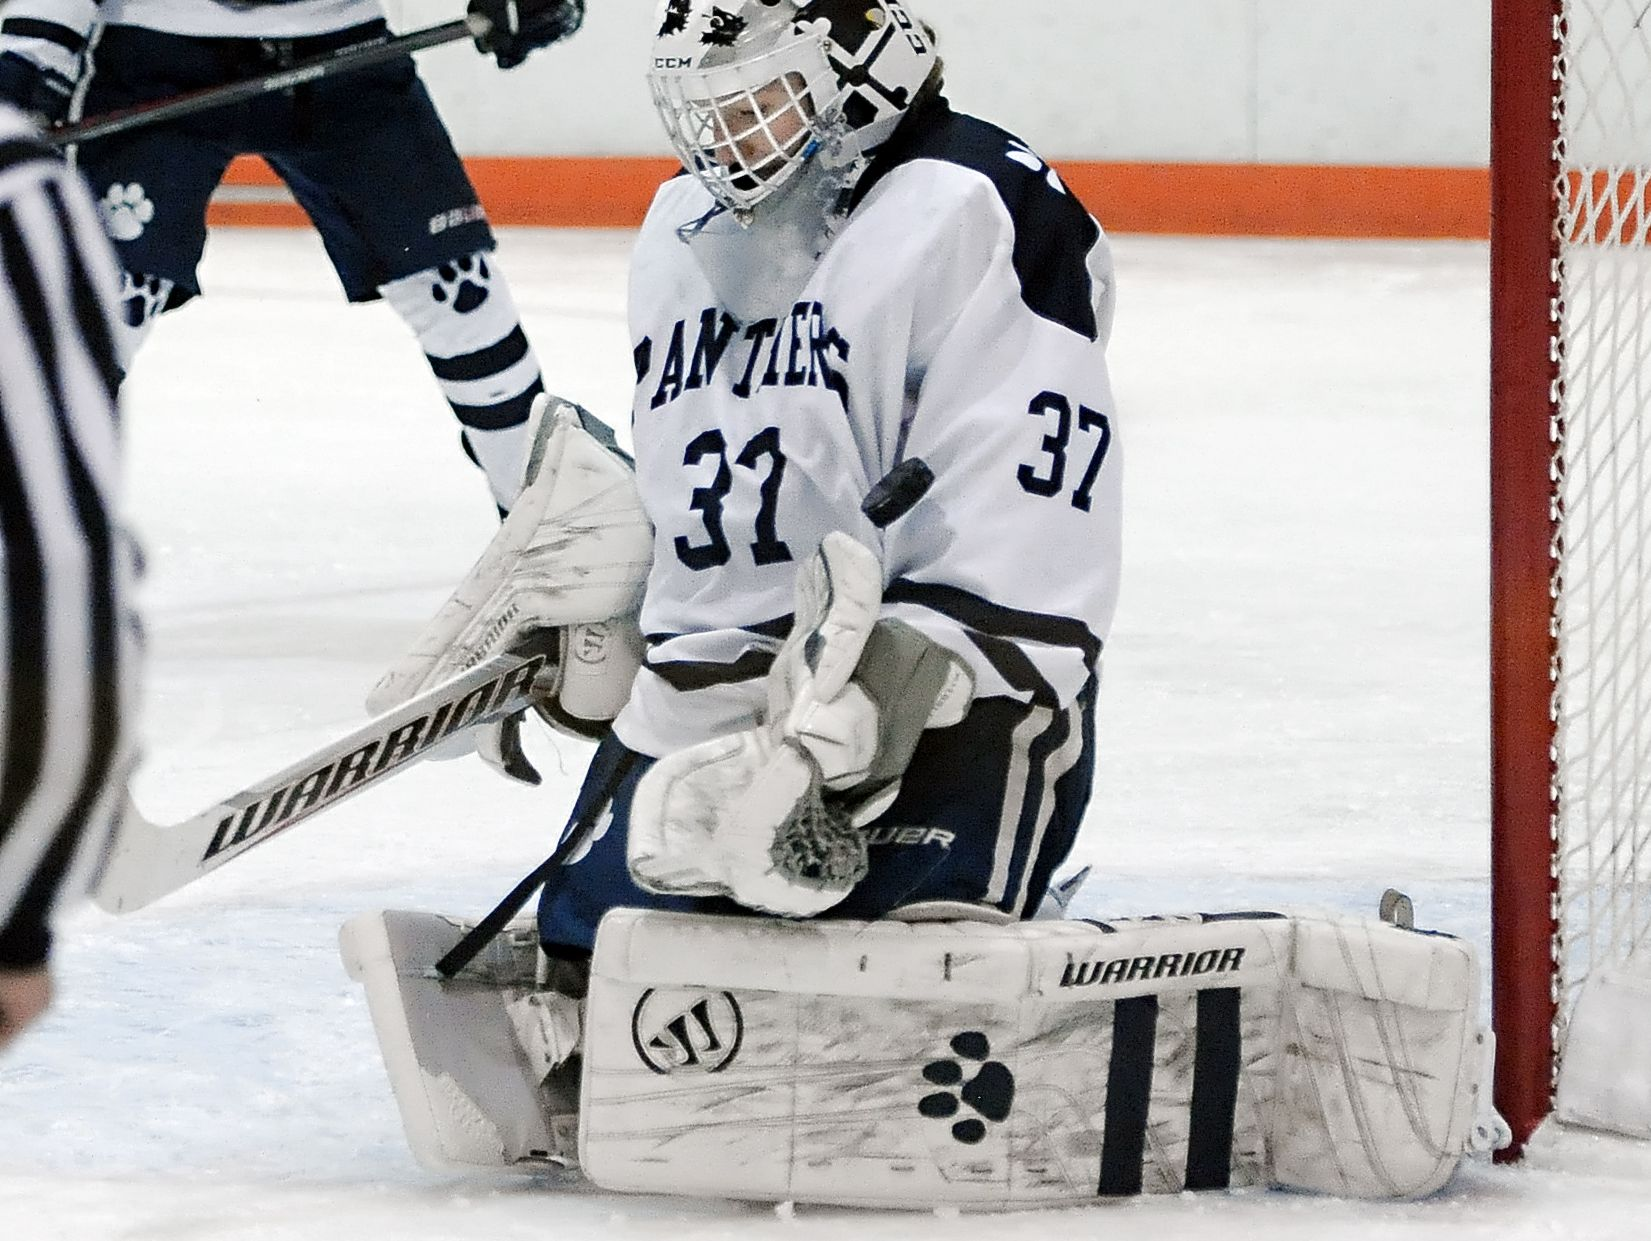 Pittsford goalie Aidan Richardson makes a save during regular season game played at RIT's Ritter Ice Arena on Tuesday, January 13, 2015. Pittsford beat Victor 5-2.